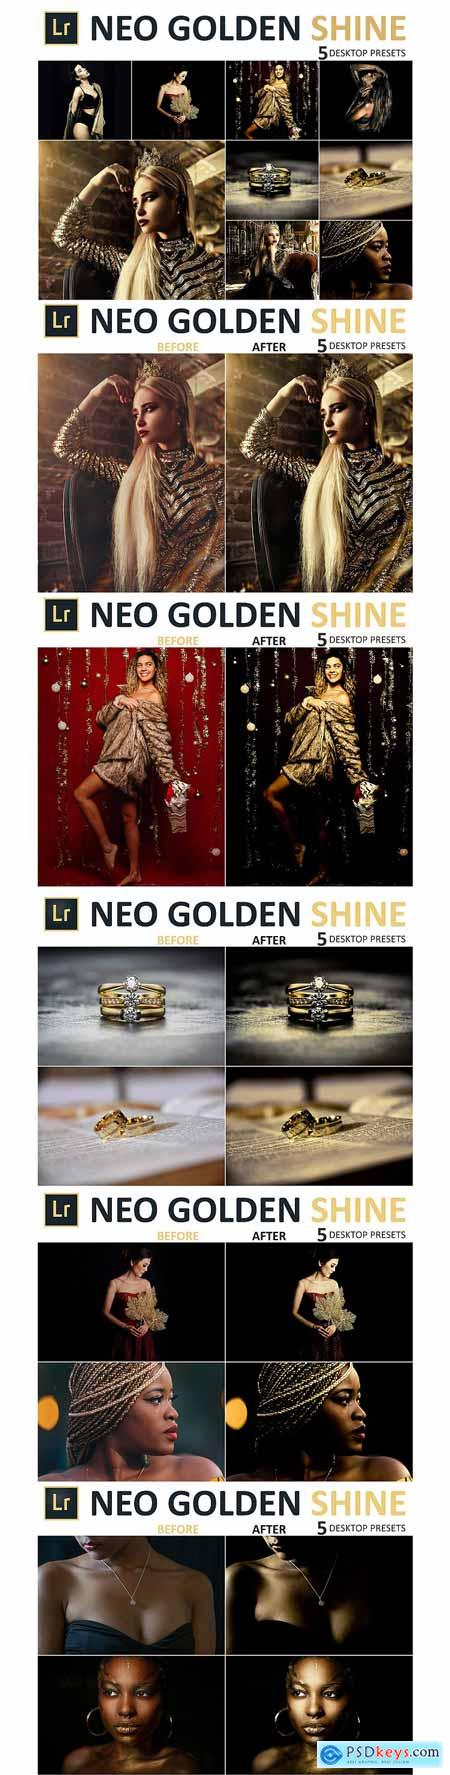 Designbundles Neo Golden Shine Desktop Lightroom Presets